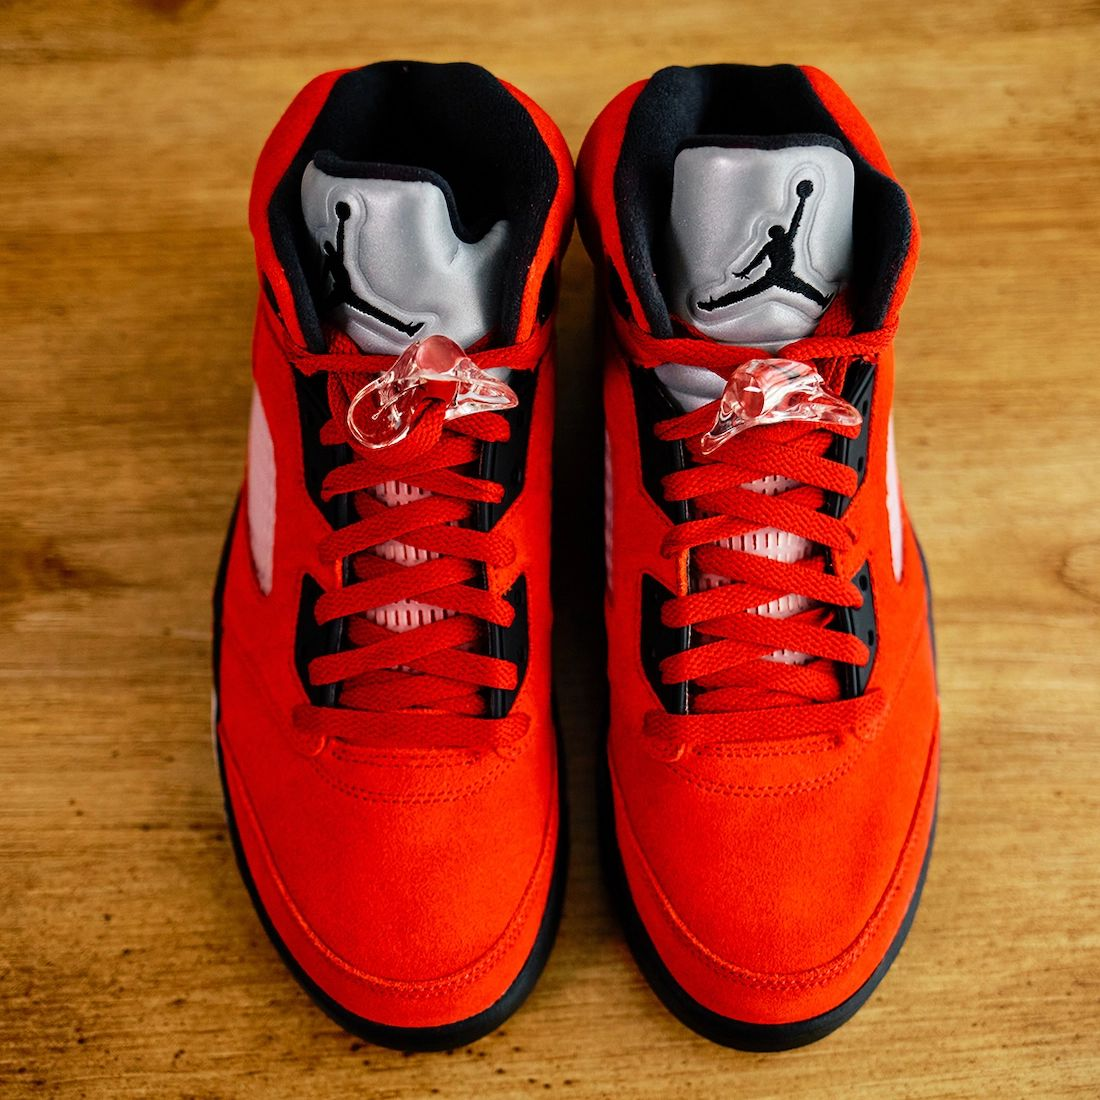 nike air max one outlet yellow light switch line Raging Bull Toro Bravo DD0587-600 Release Date